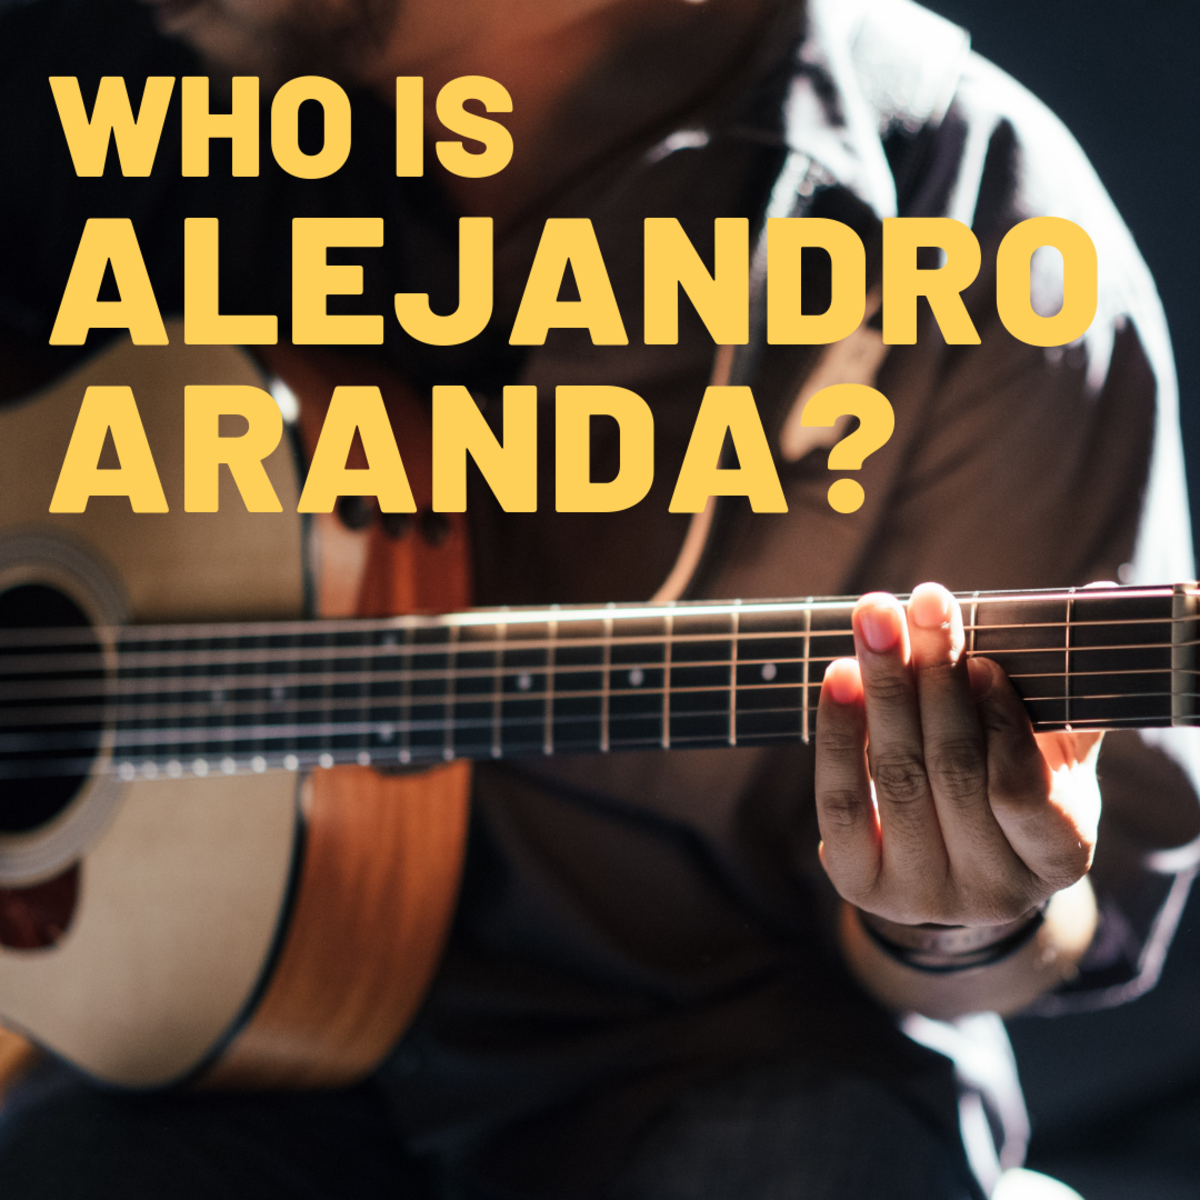 Who Is Alejandro Aranda?